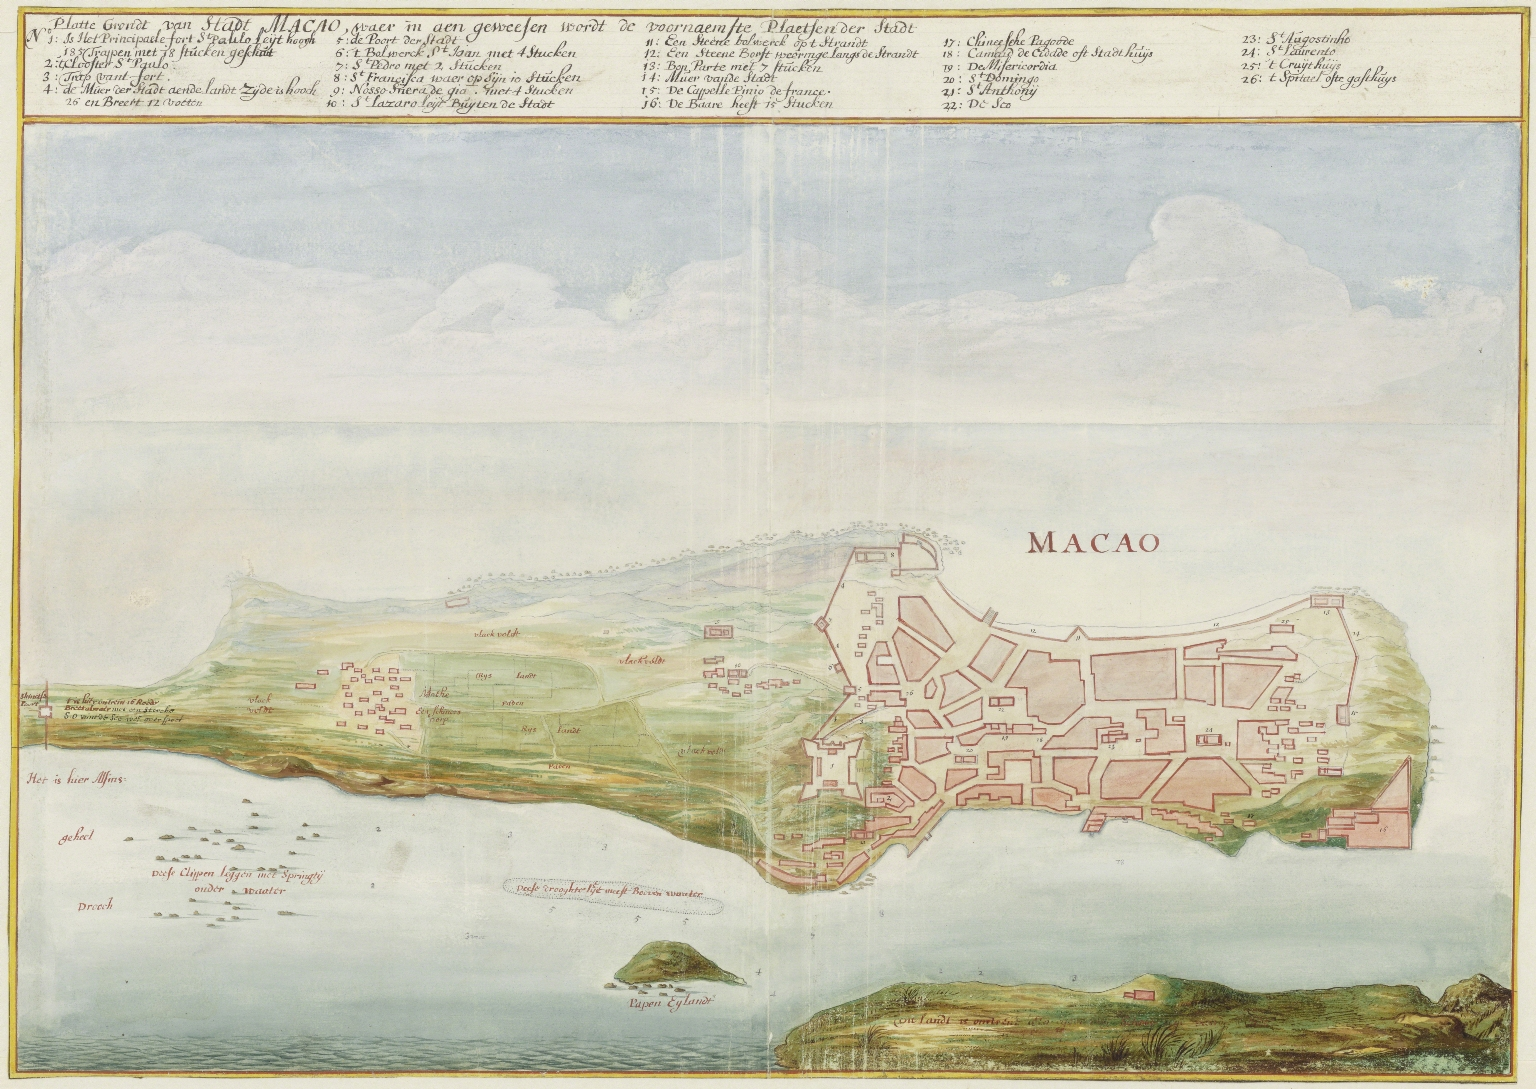 Map of the city of Macao